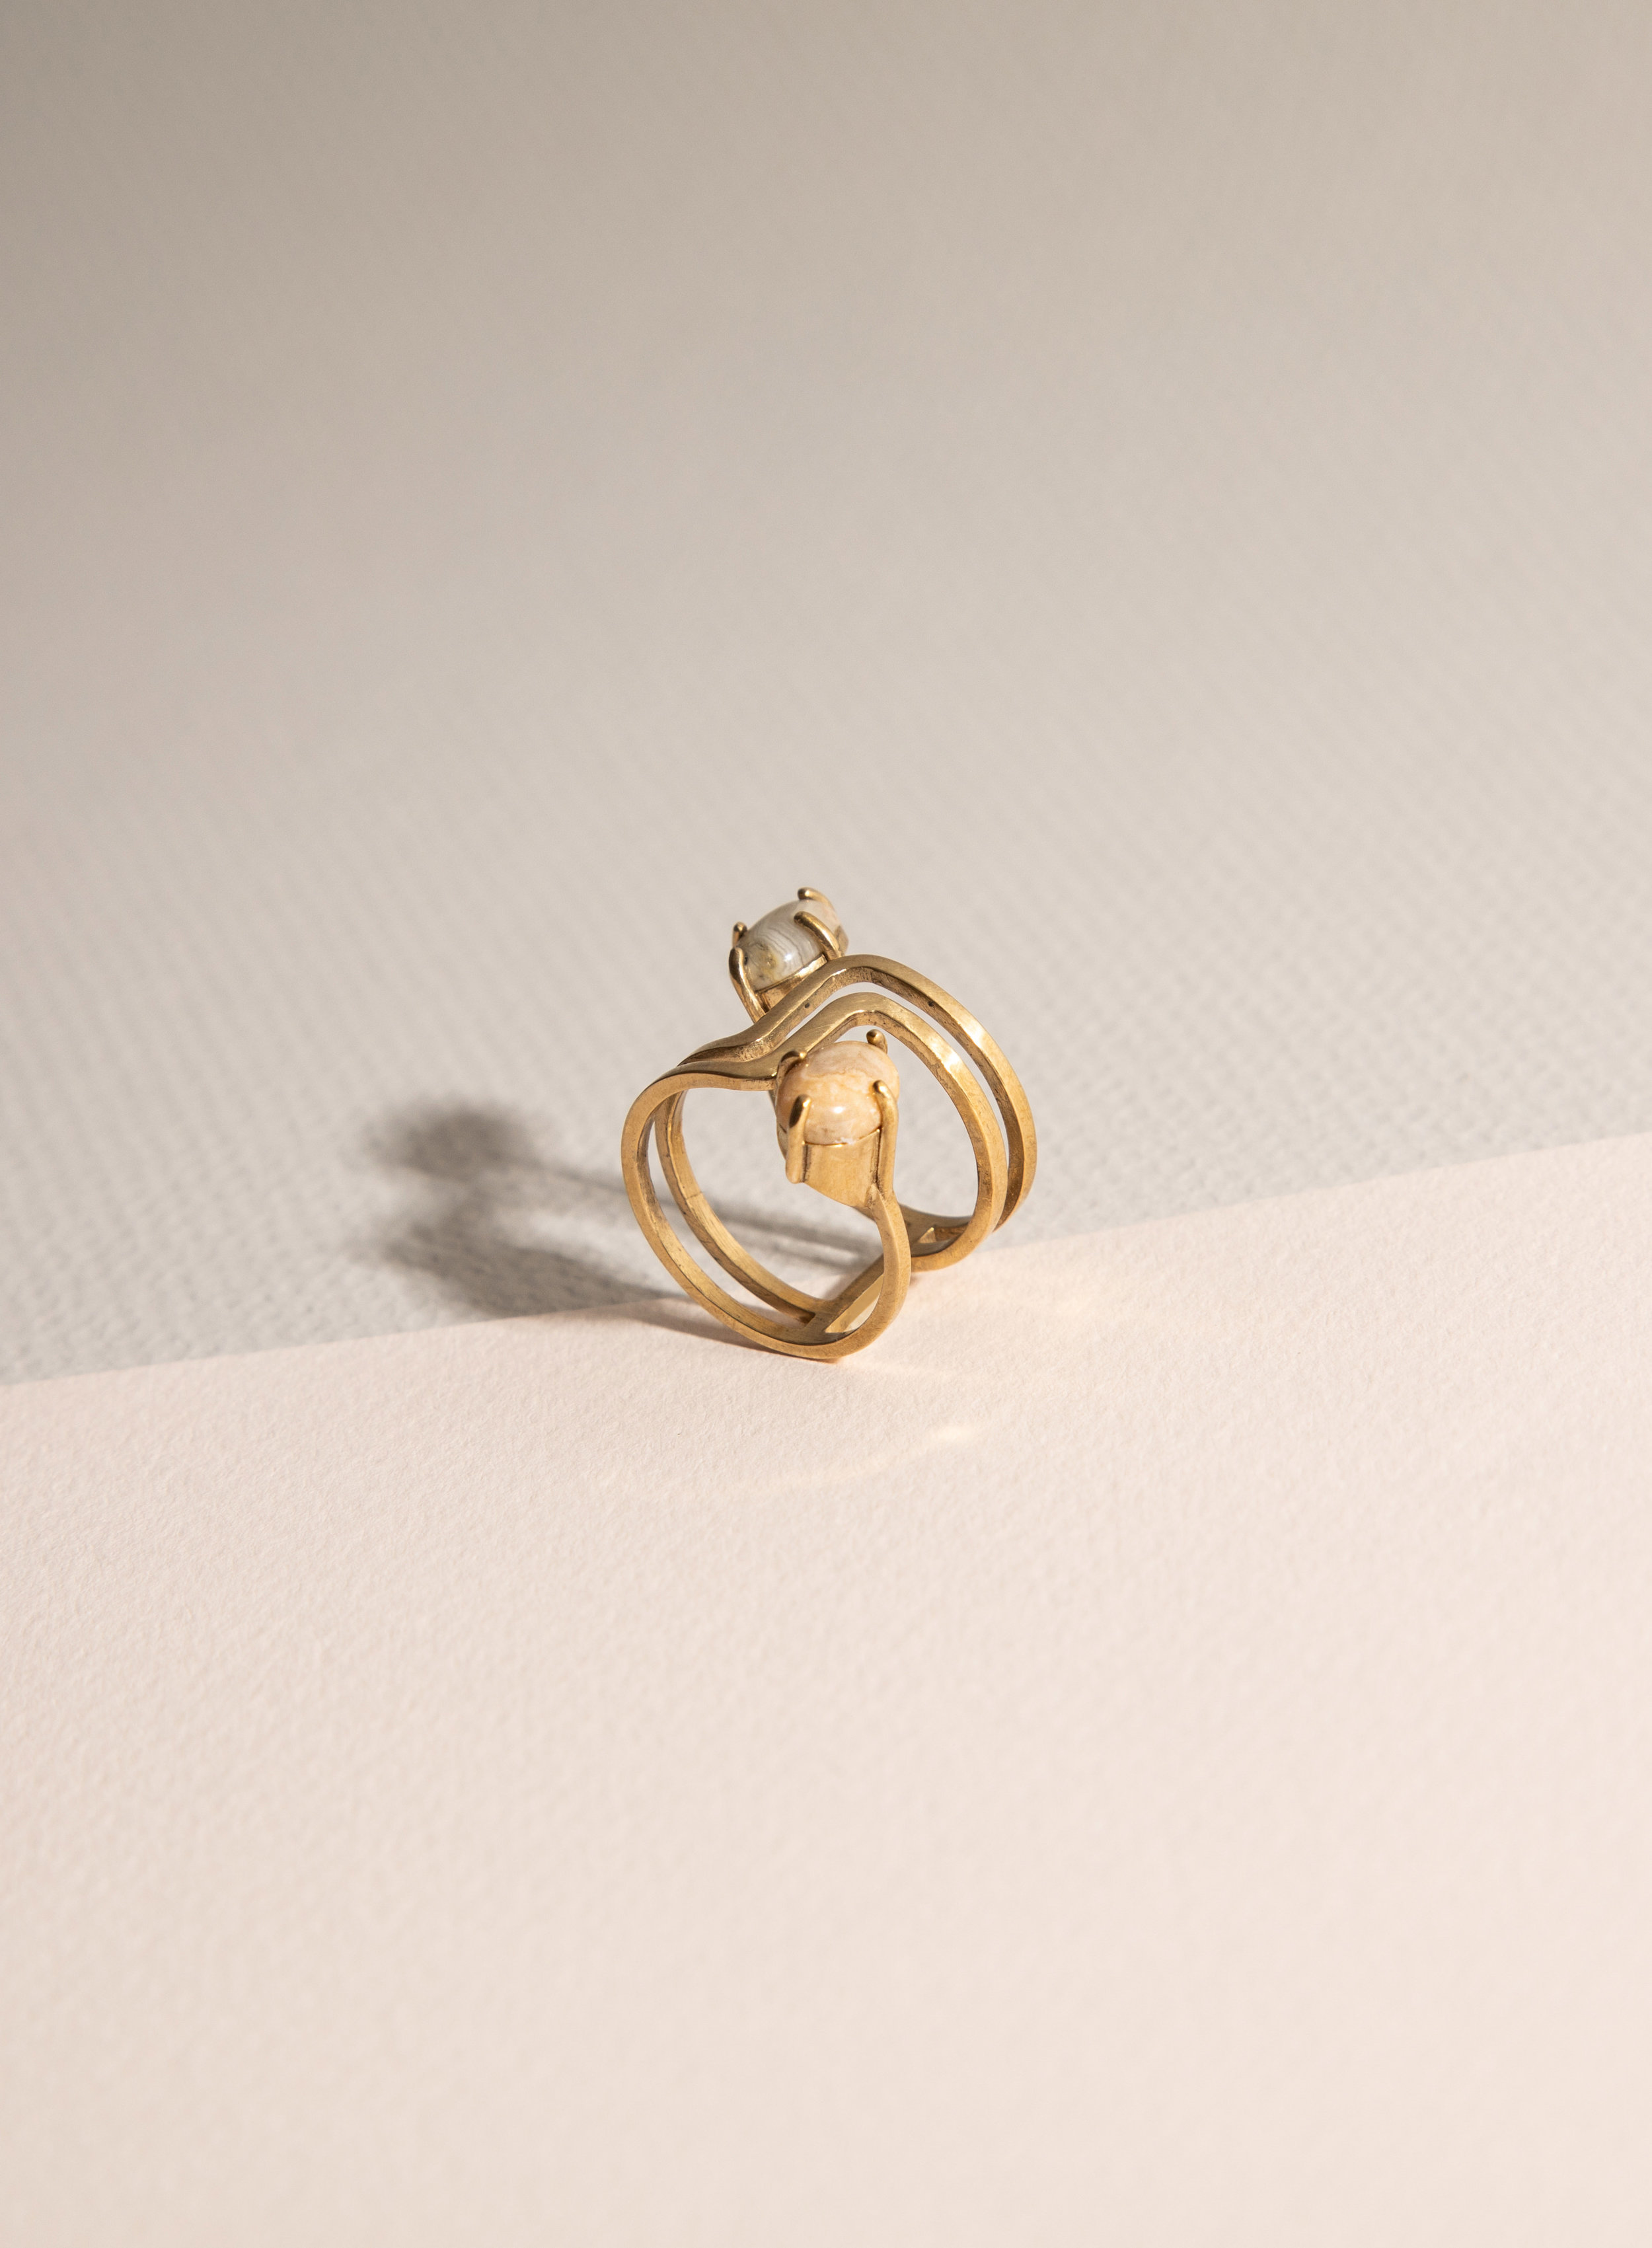 ring_double_stone_03.jpg